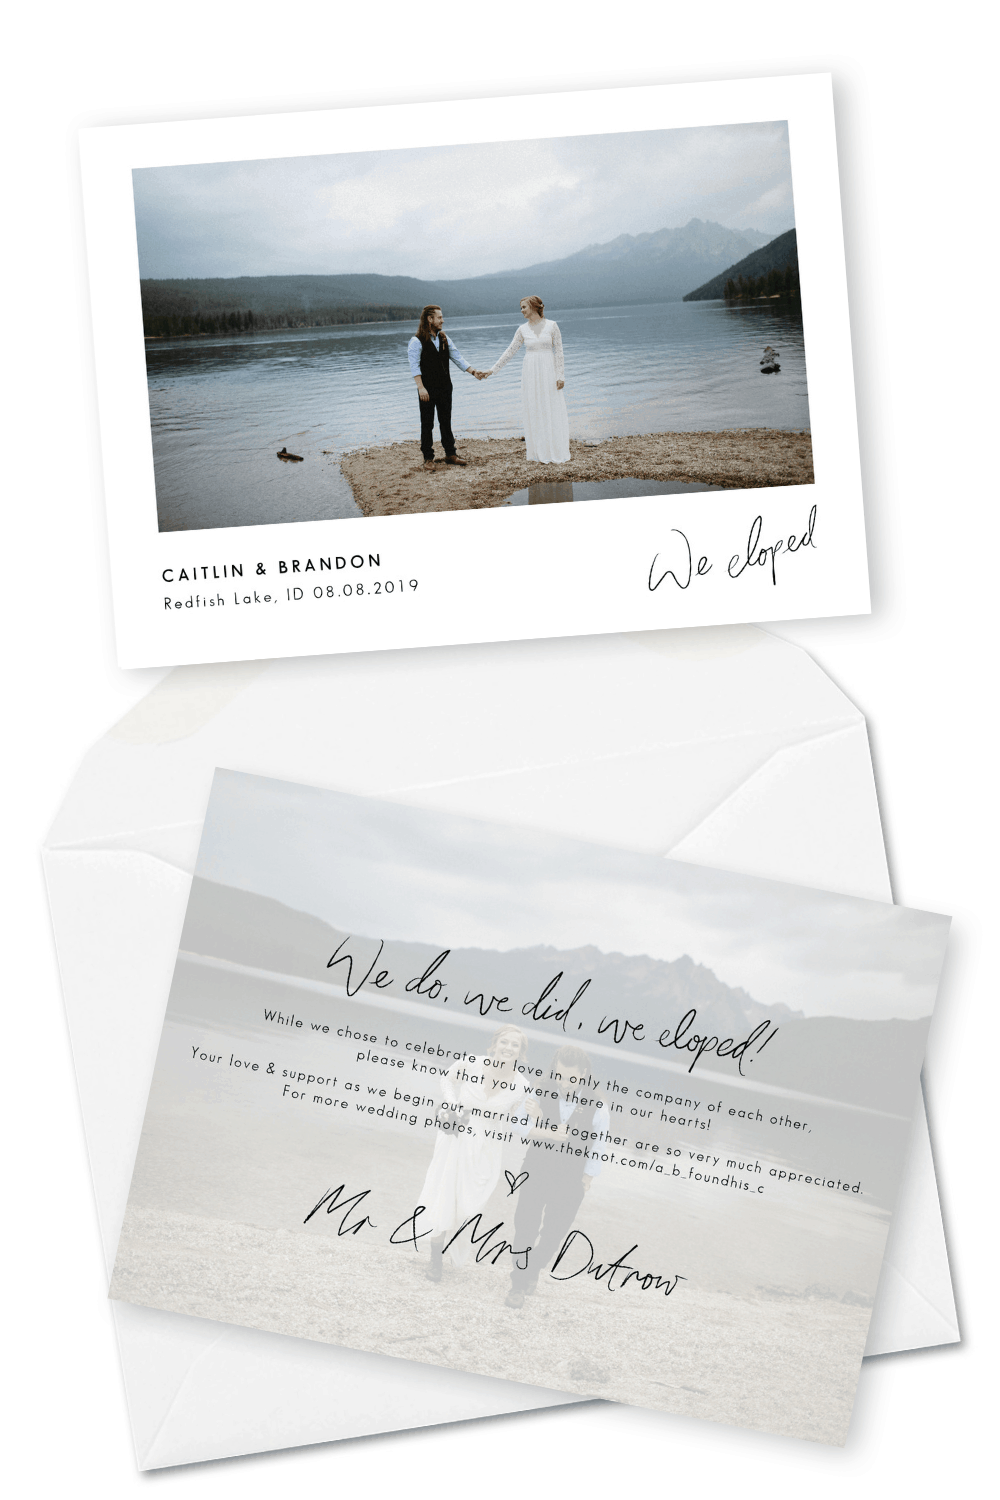 Elopement Announcement Wording Ideas and Examples For the Love of Stationery Christine Marie